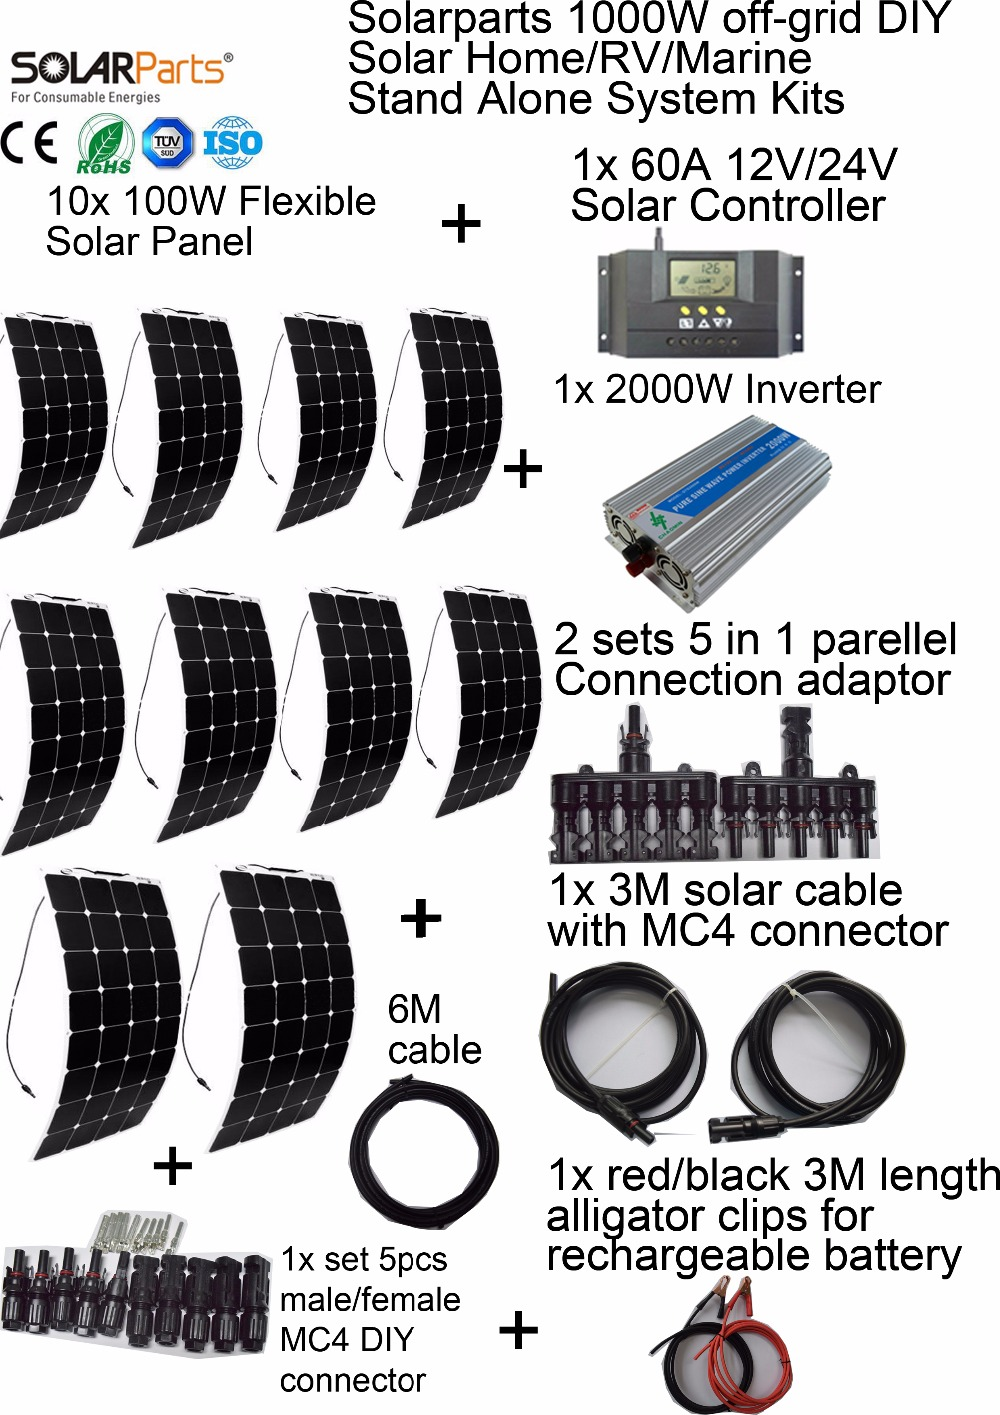 solarparts 1000w off grid solar system kits flexible solar panel  controller inverter cable